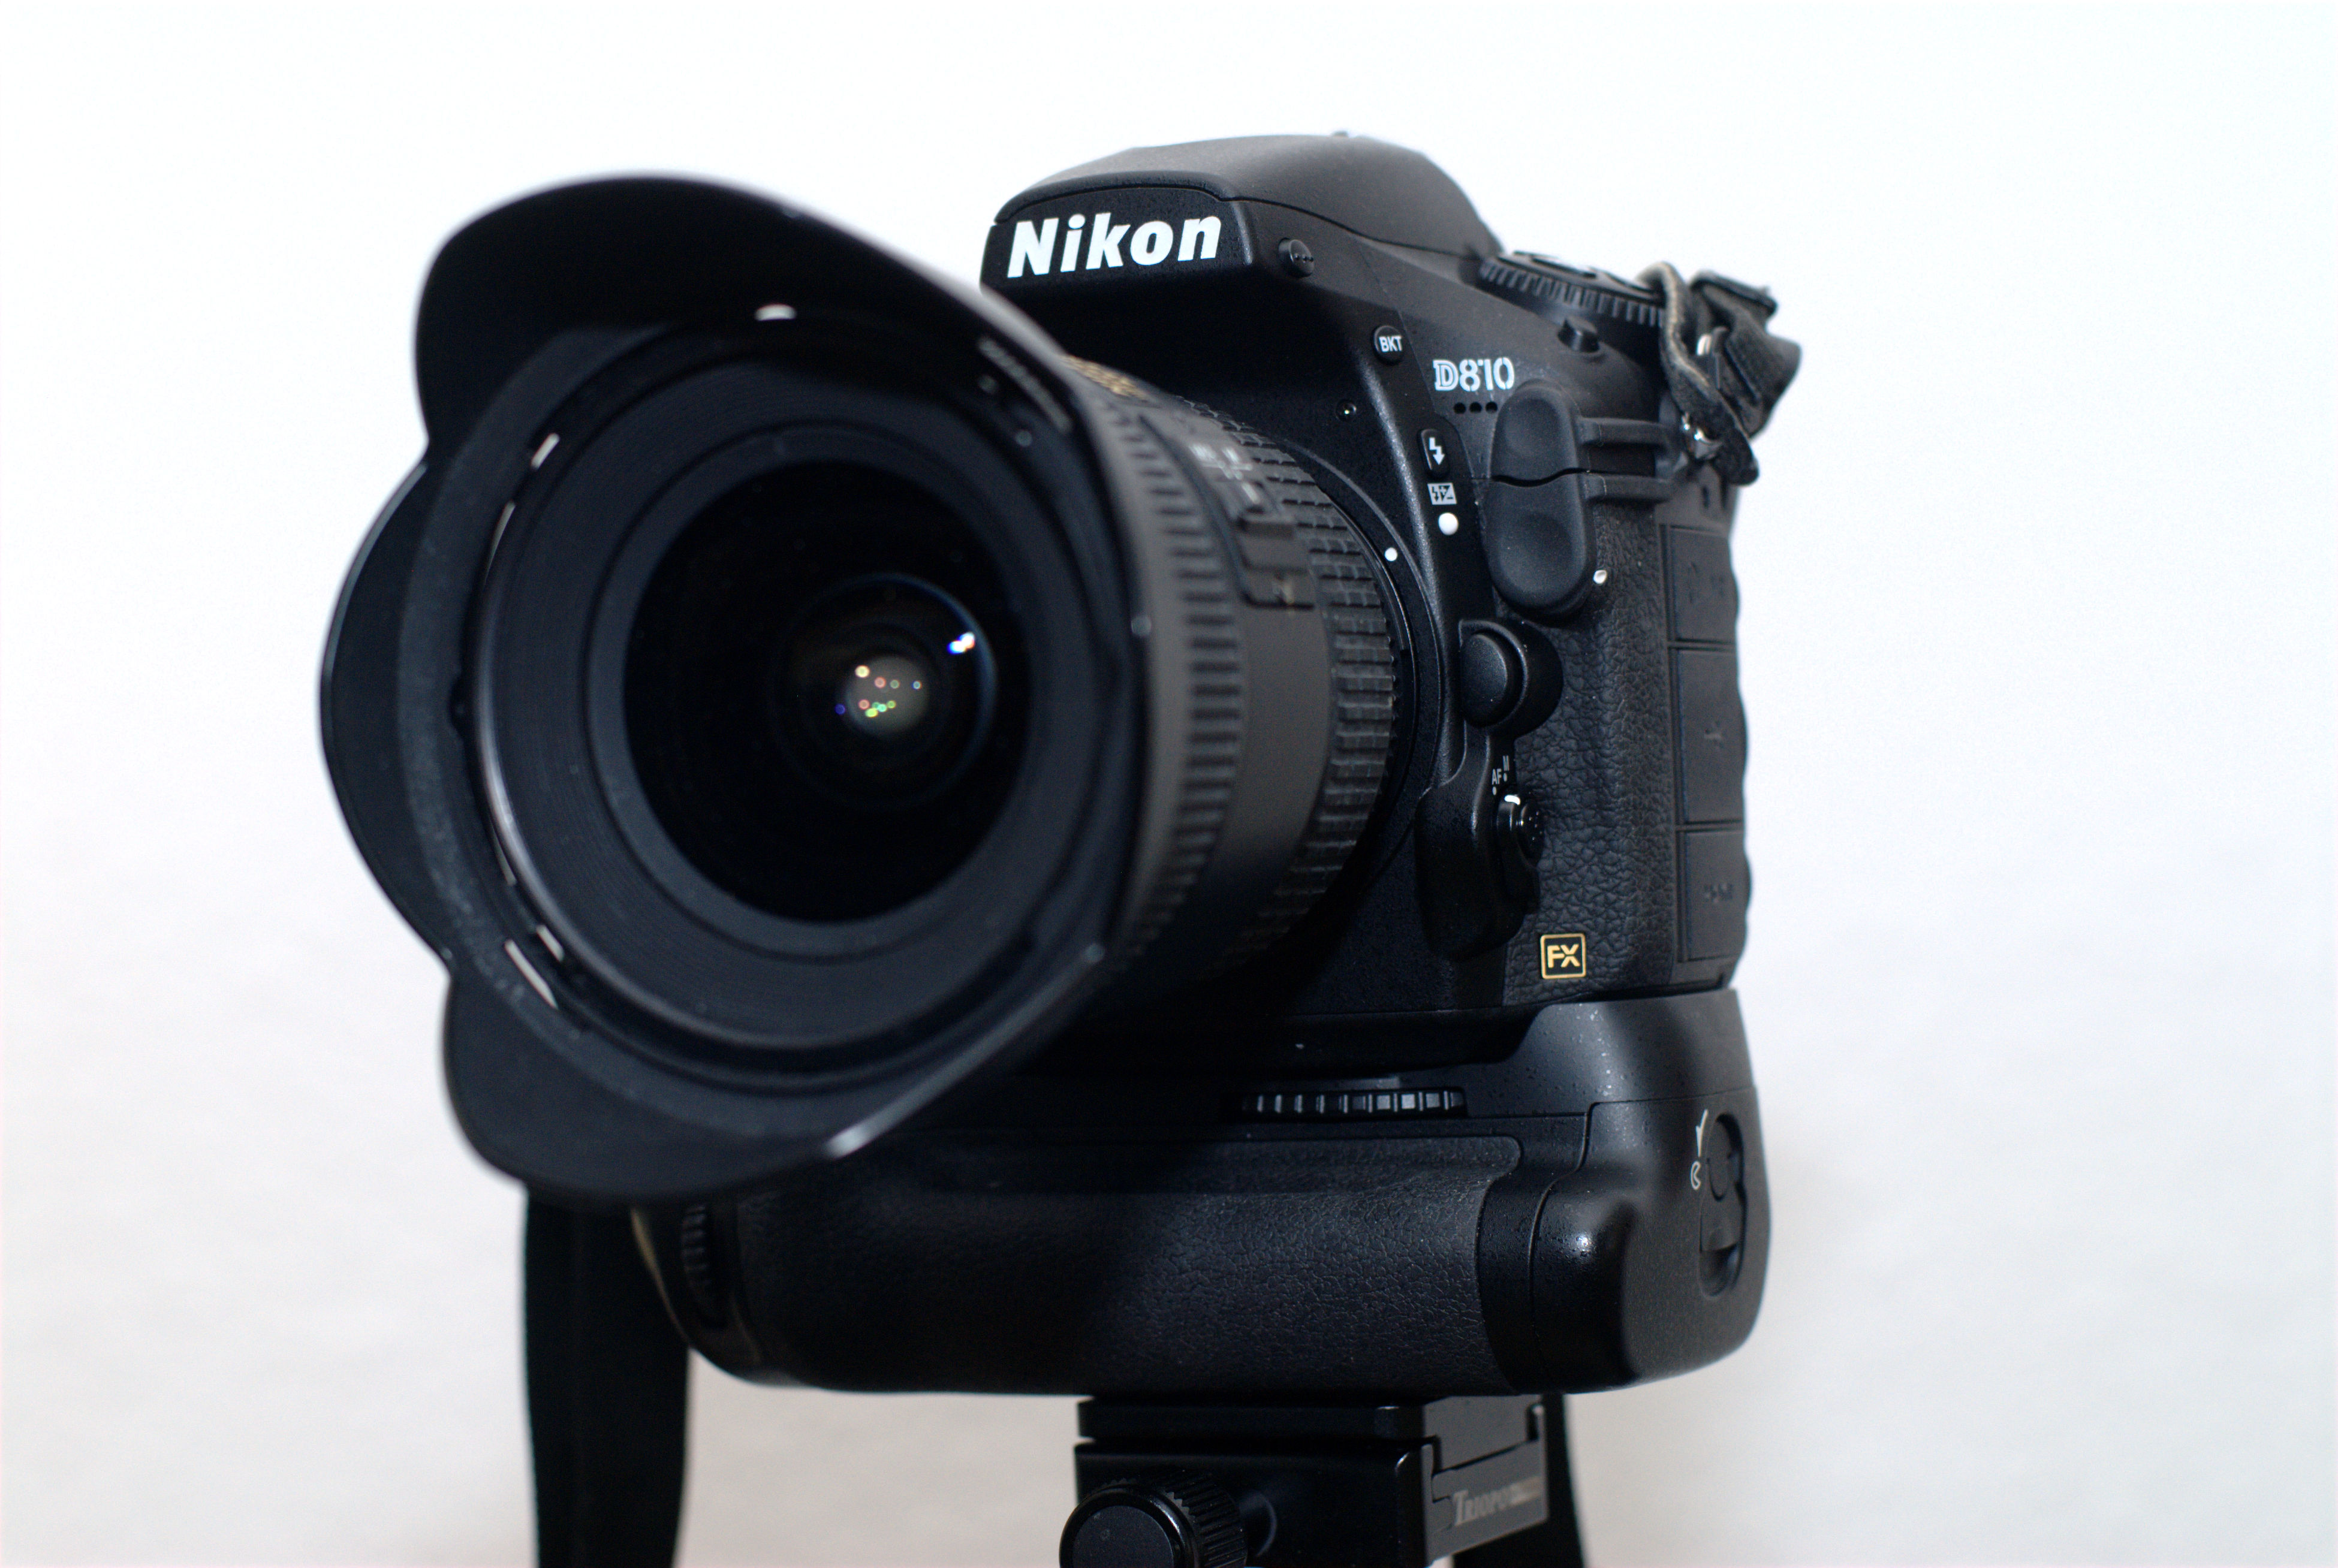 D810 with MB D12 and Nikkor 2.8/17-35mm